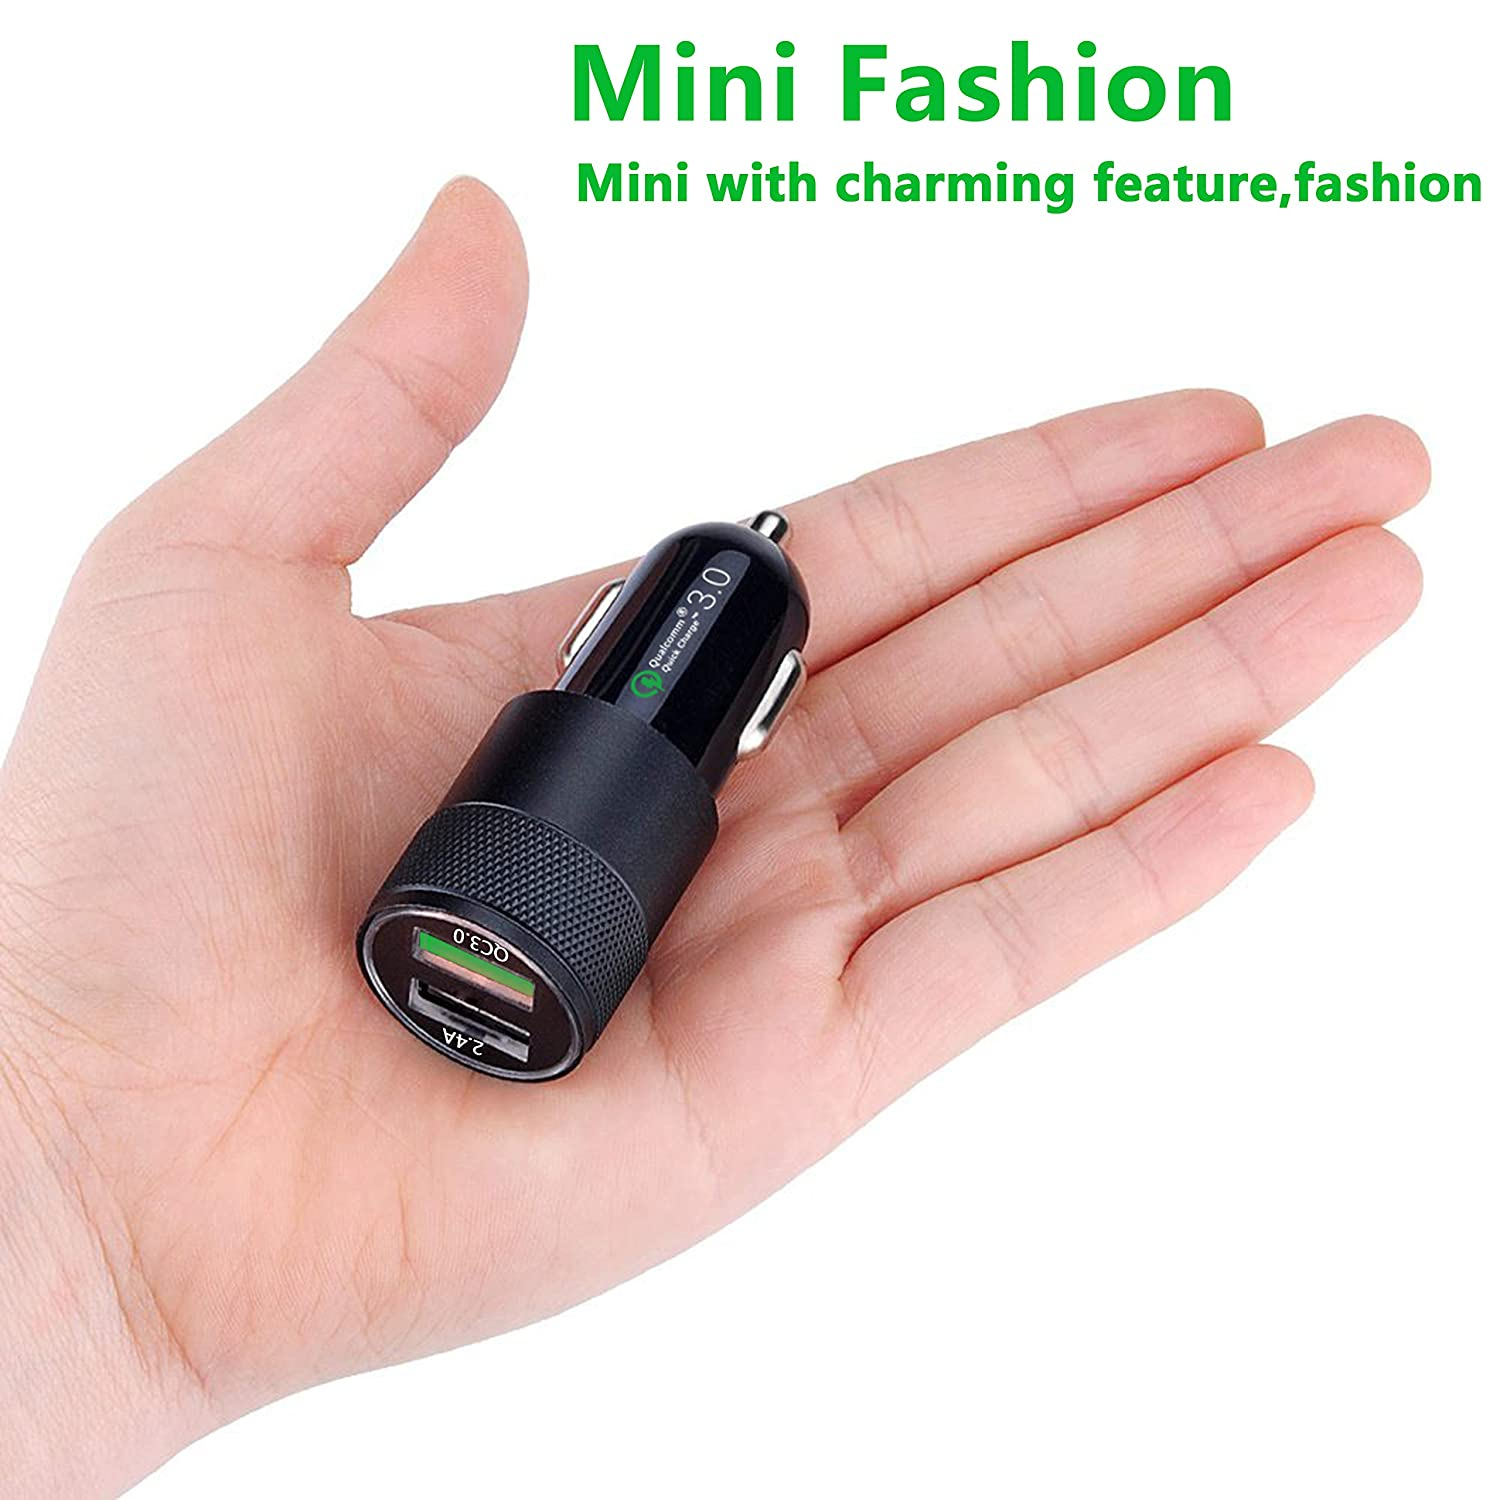 Car Charger Aonear Quick Charge 3.0 USB Adapter Extra 3ft USB Type C Fast Charging Cable Cord Compatible Samsung Galaxy S9//S9+//S8//S8 Plus//Note 8,Google Pixel//Pixel XL//2//2 XL//3//3 XL 4351501919